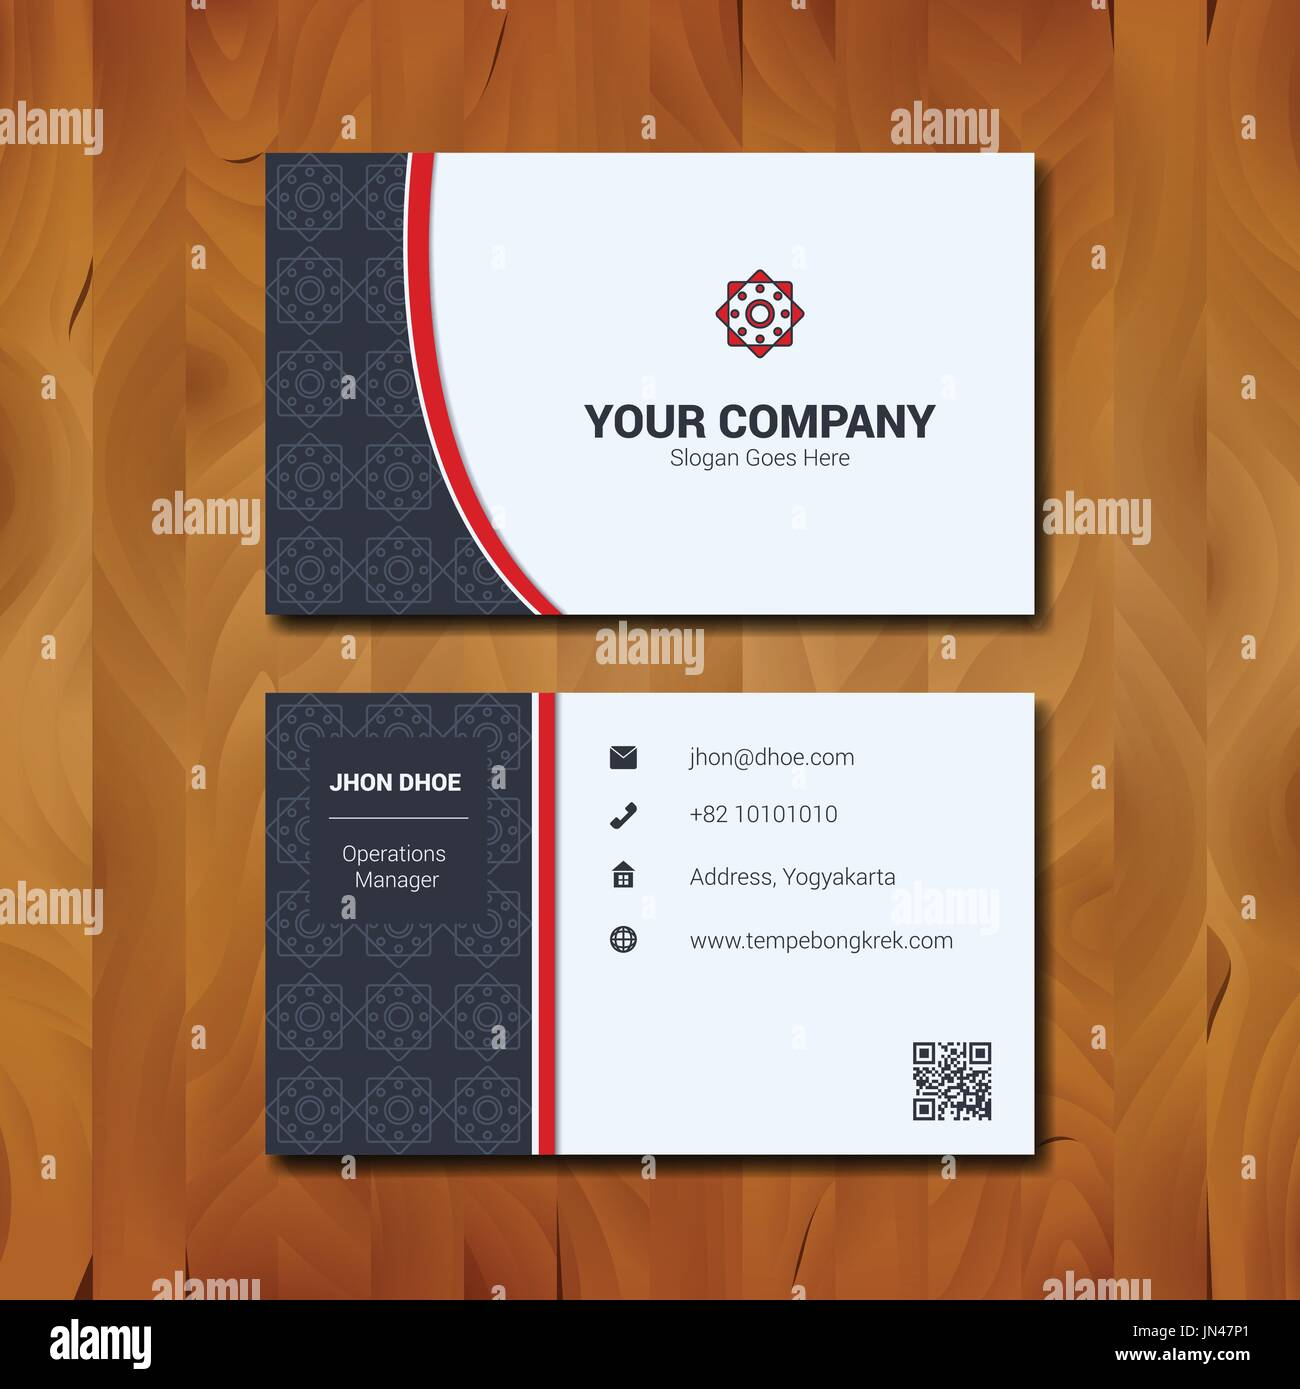 Simple business card template design with company logo on wood stock simple business card template design with company logo on wood background flashek Gallery